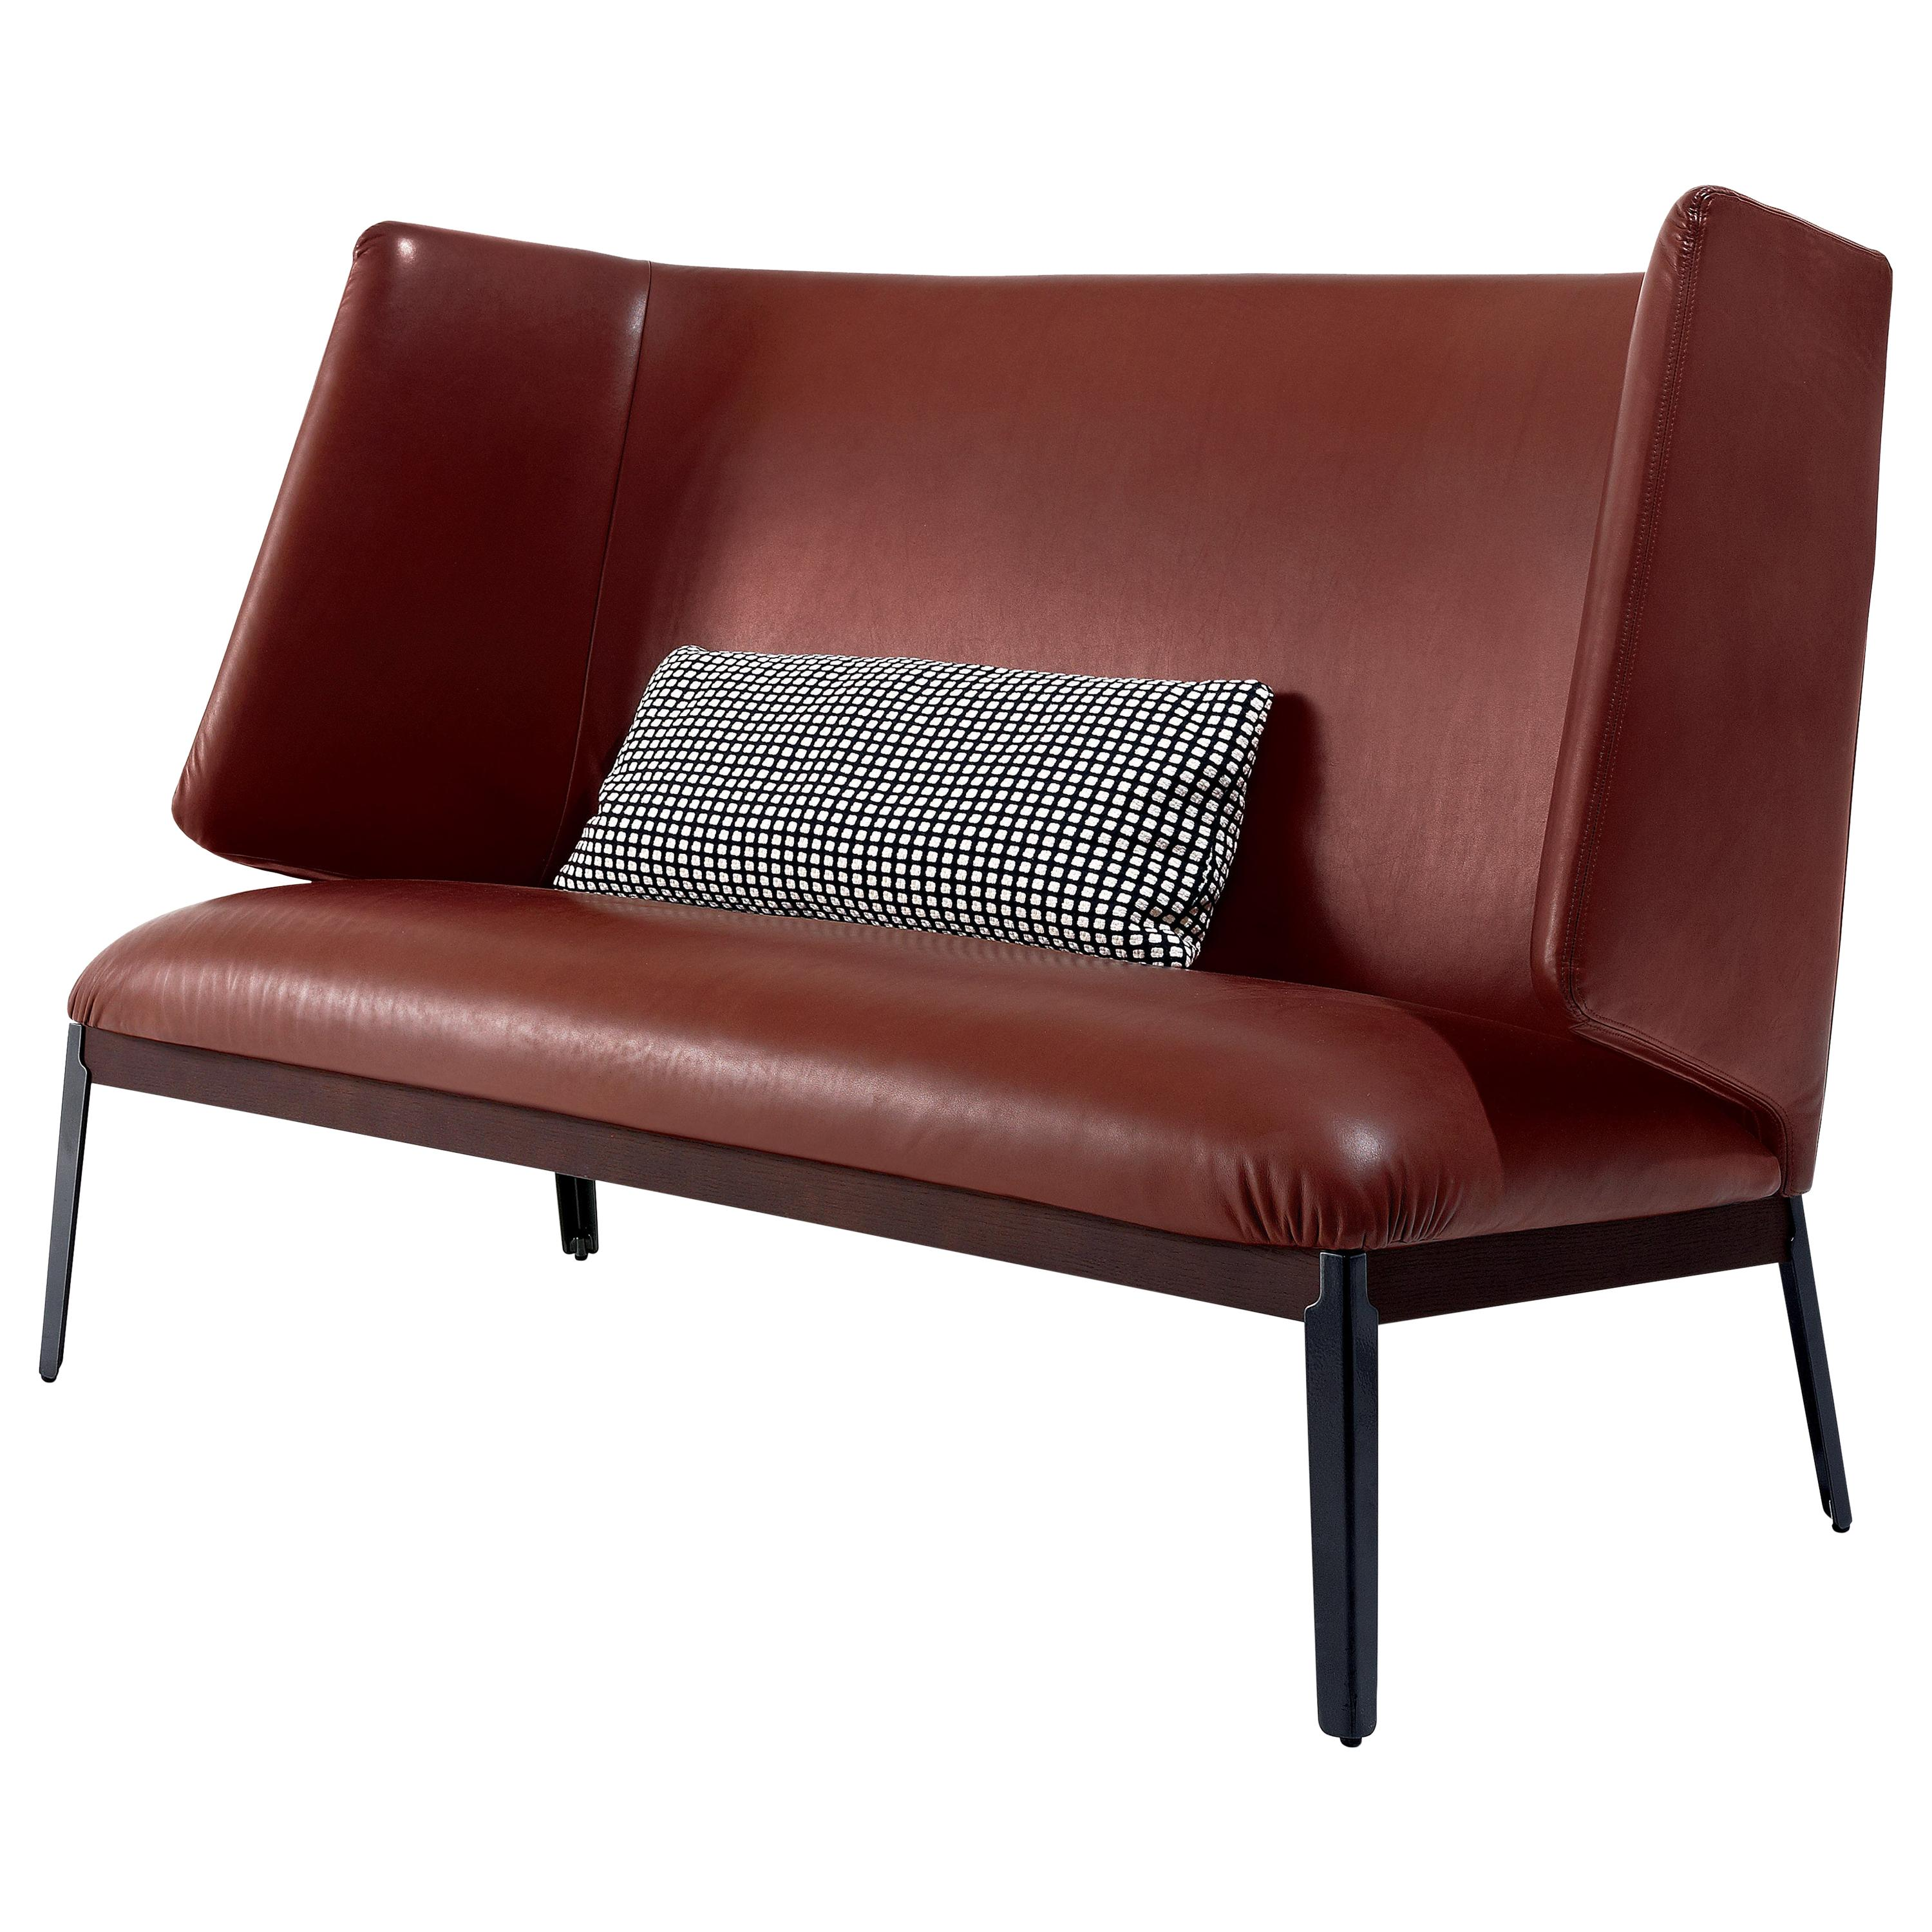 Arflex Hug Love Seat high back and armrest in Perla Leather by Roberto Menghi